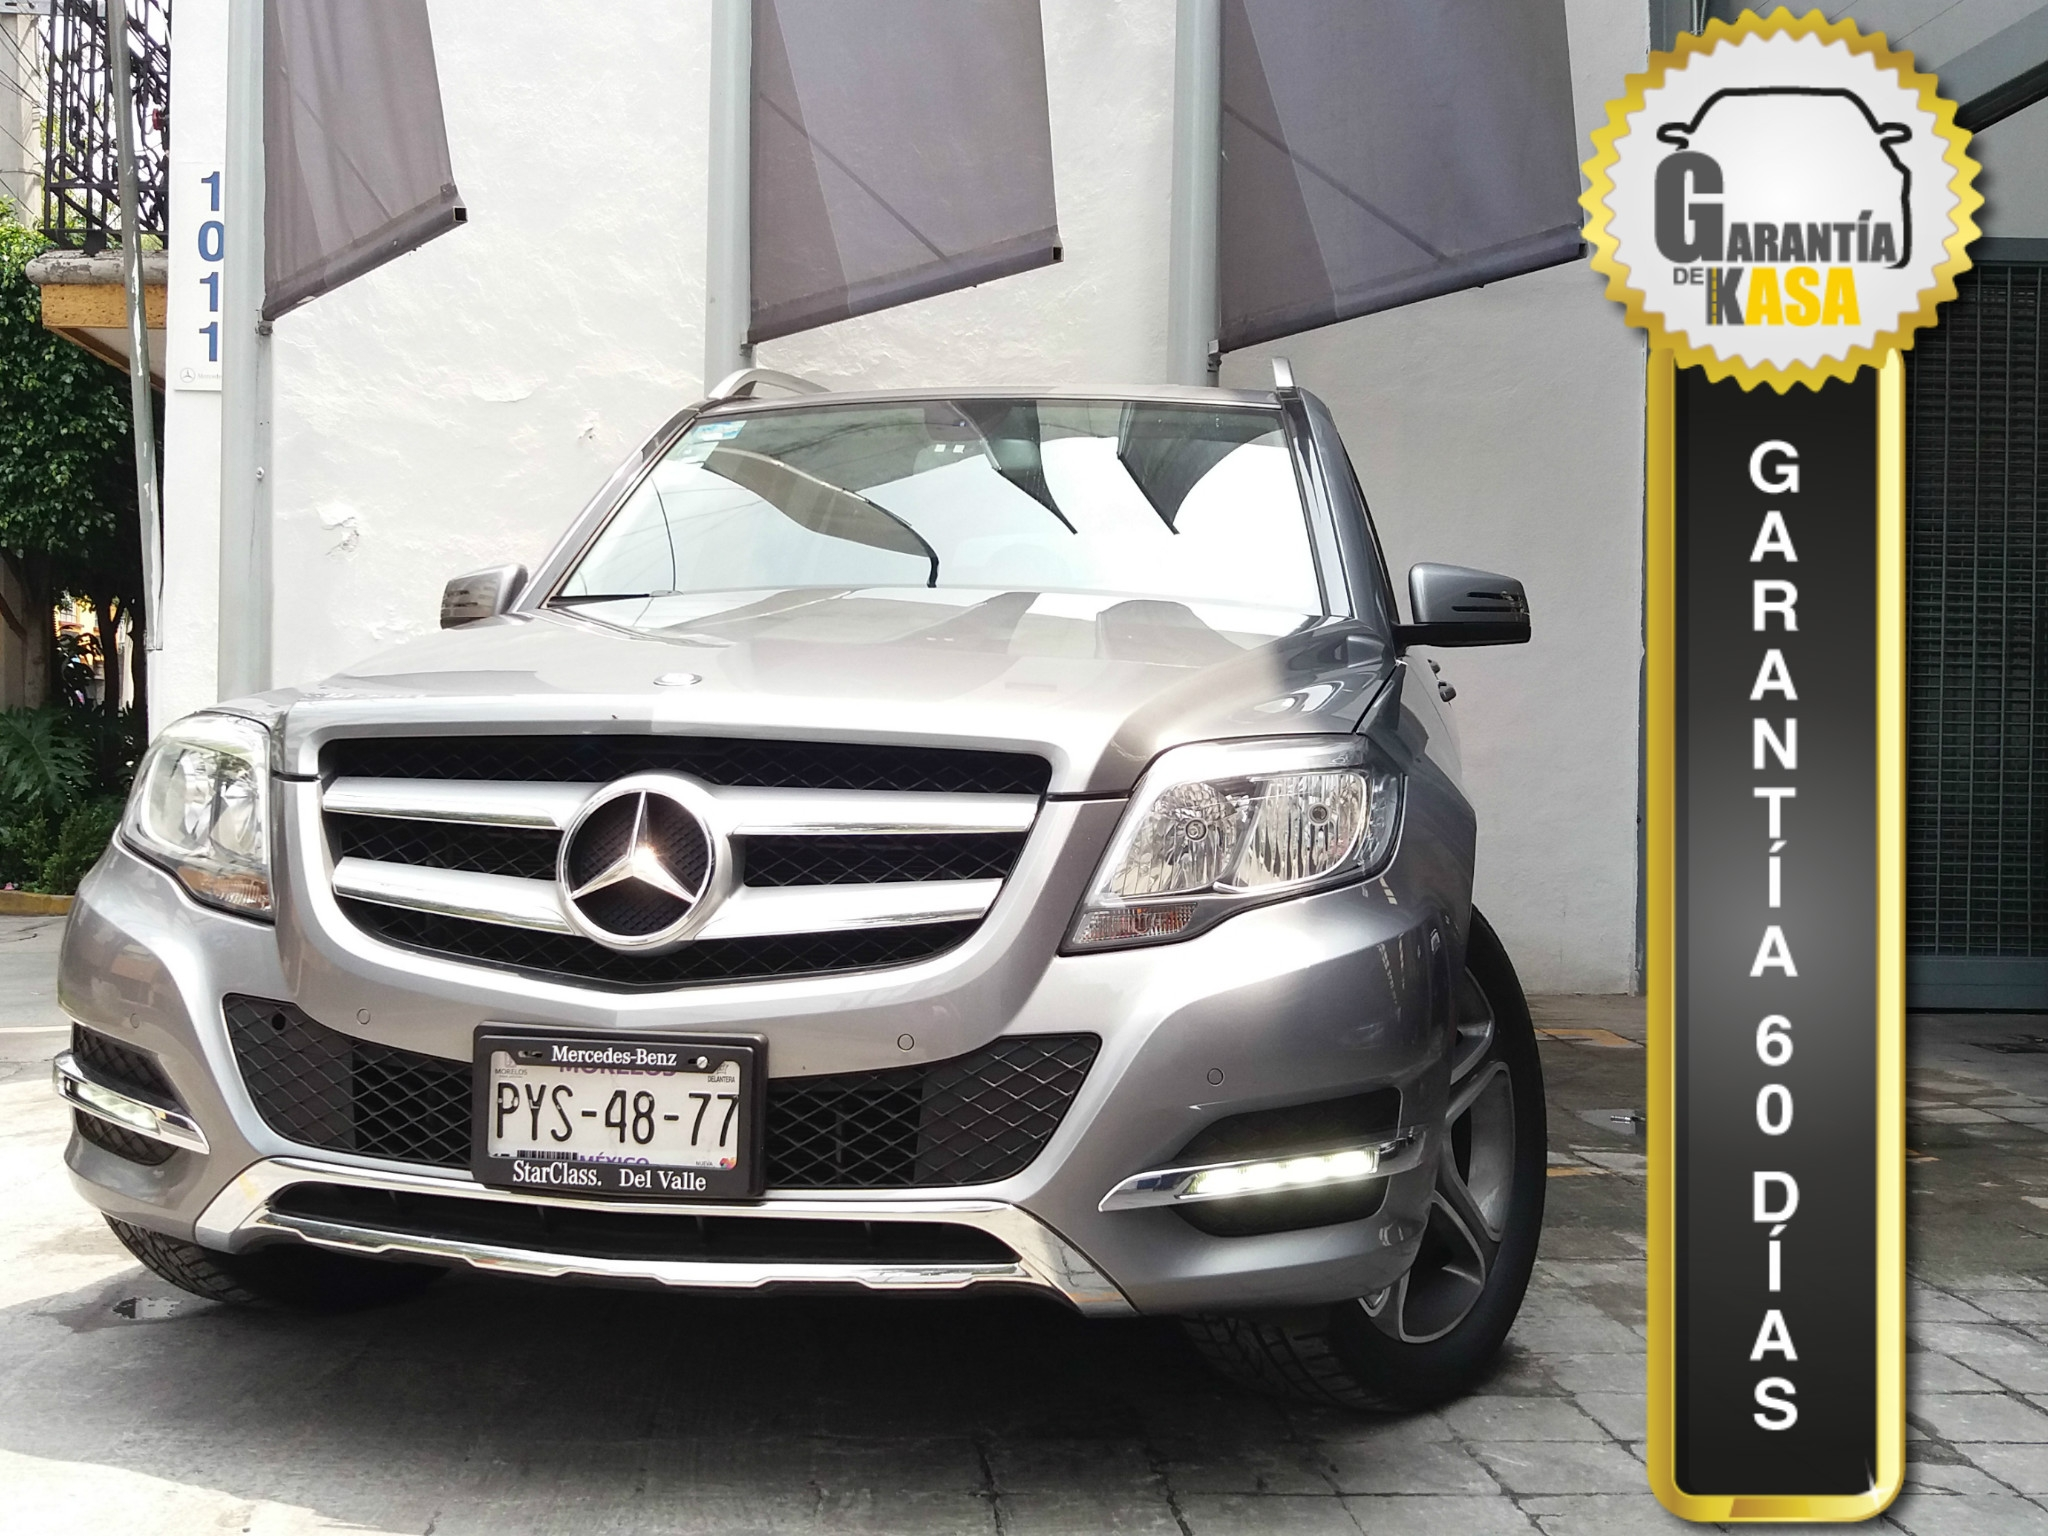 Mercedes Benz Clase GLK 300 Off Road 2015